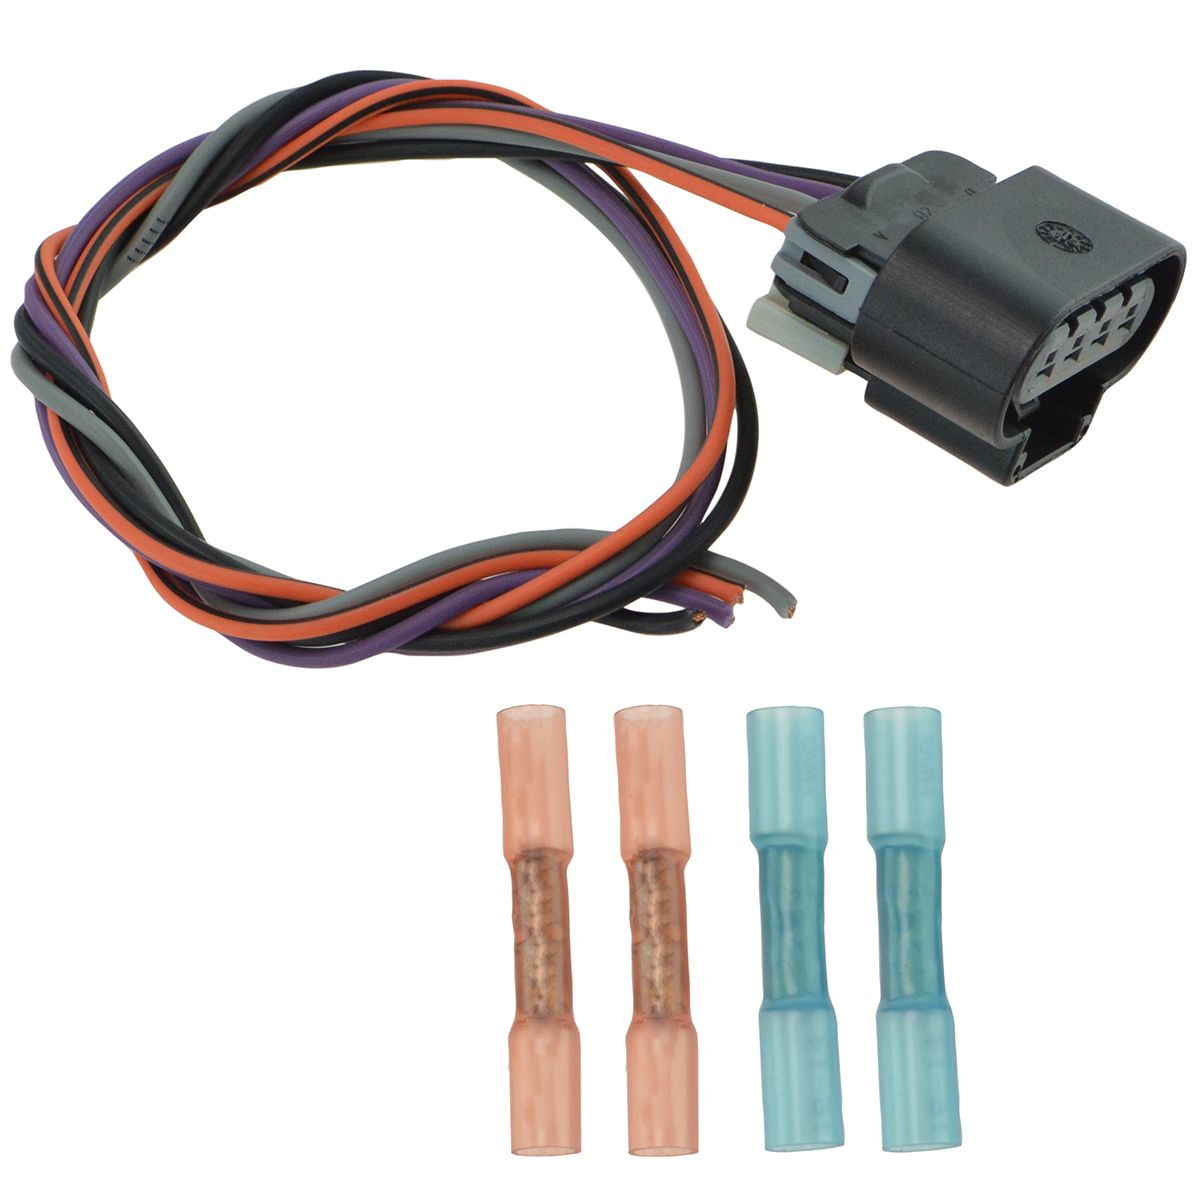 Chevrolet NEW Fuel Pump 4-WIRE Female Wiring Harness With Wire Connector Fits